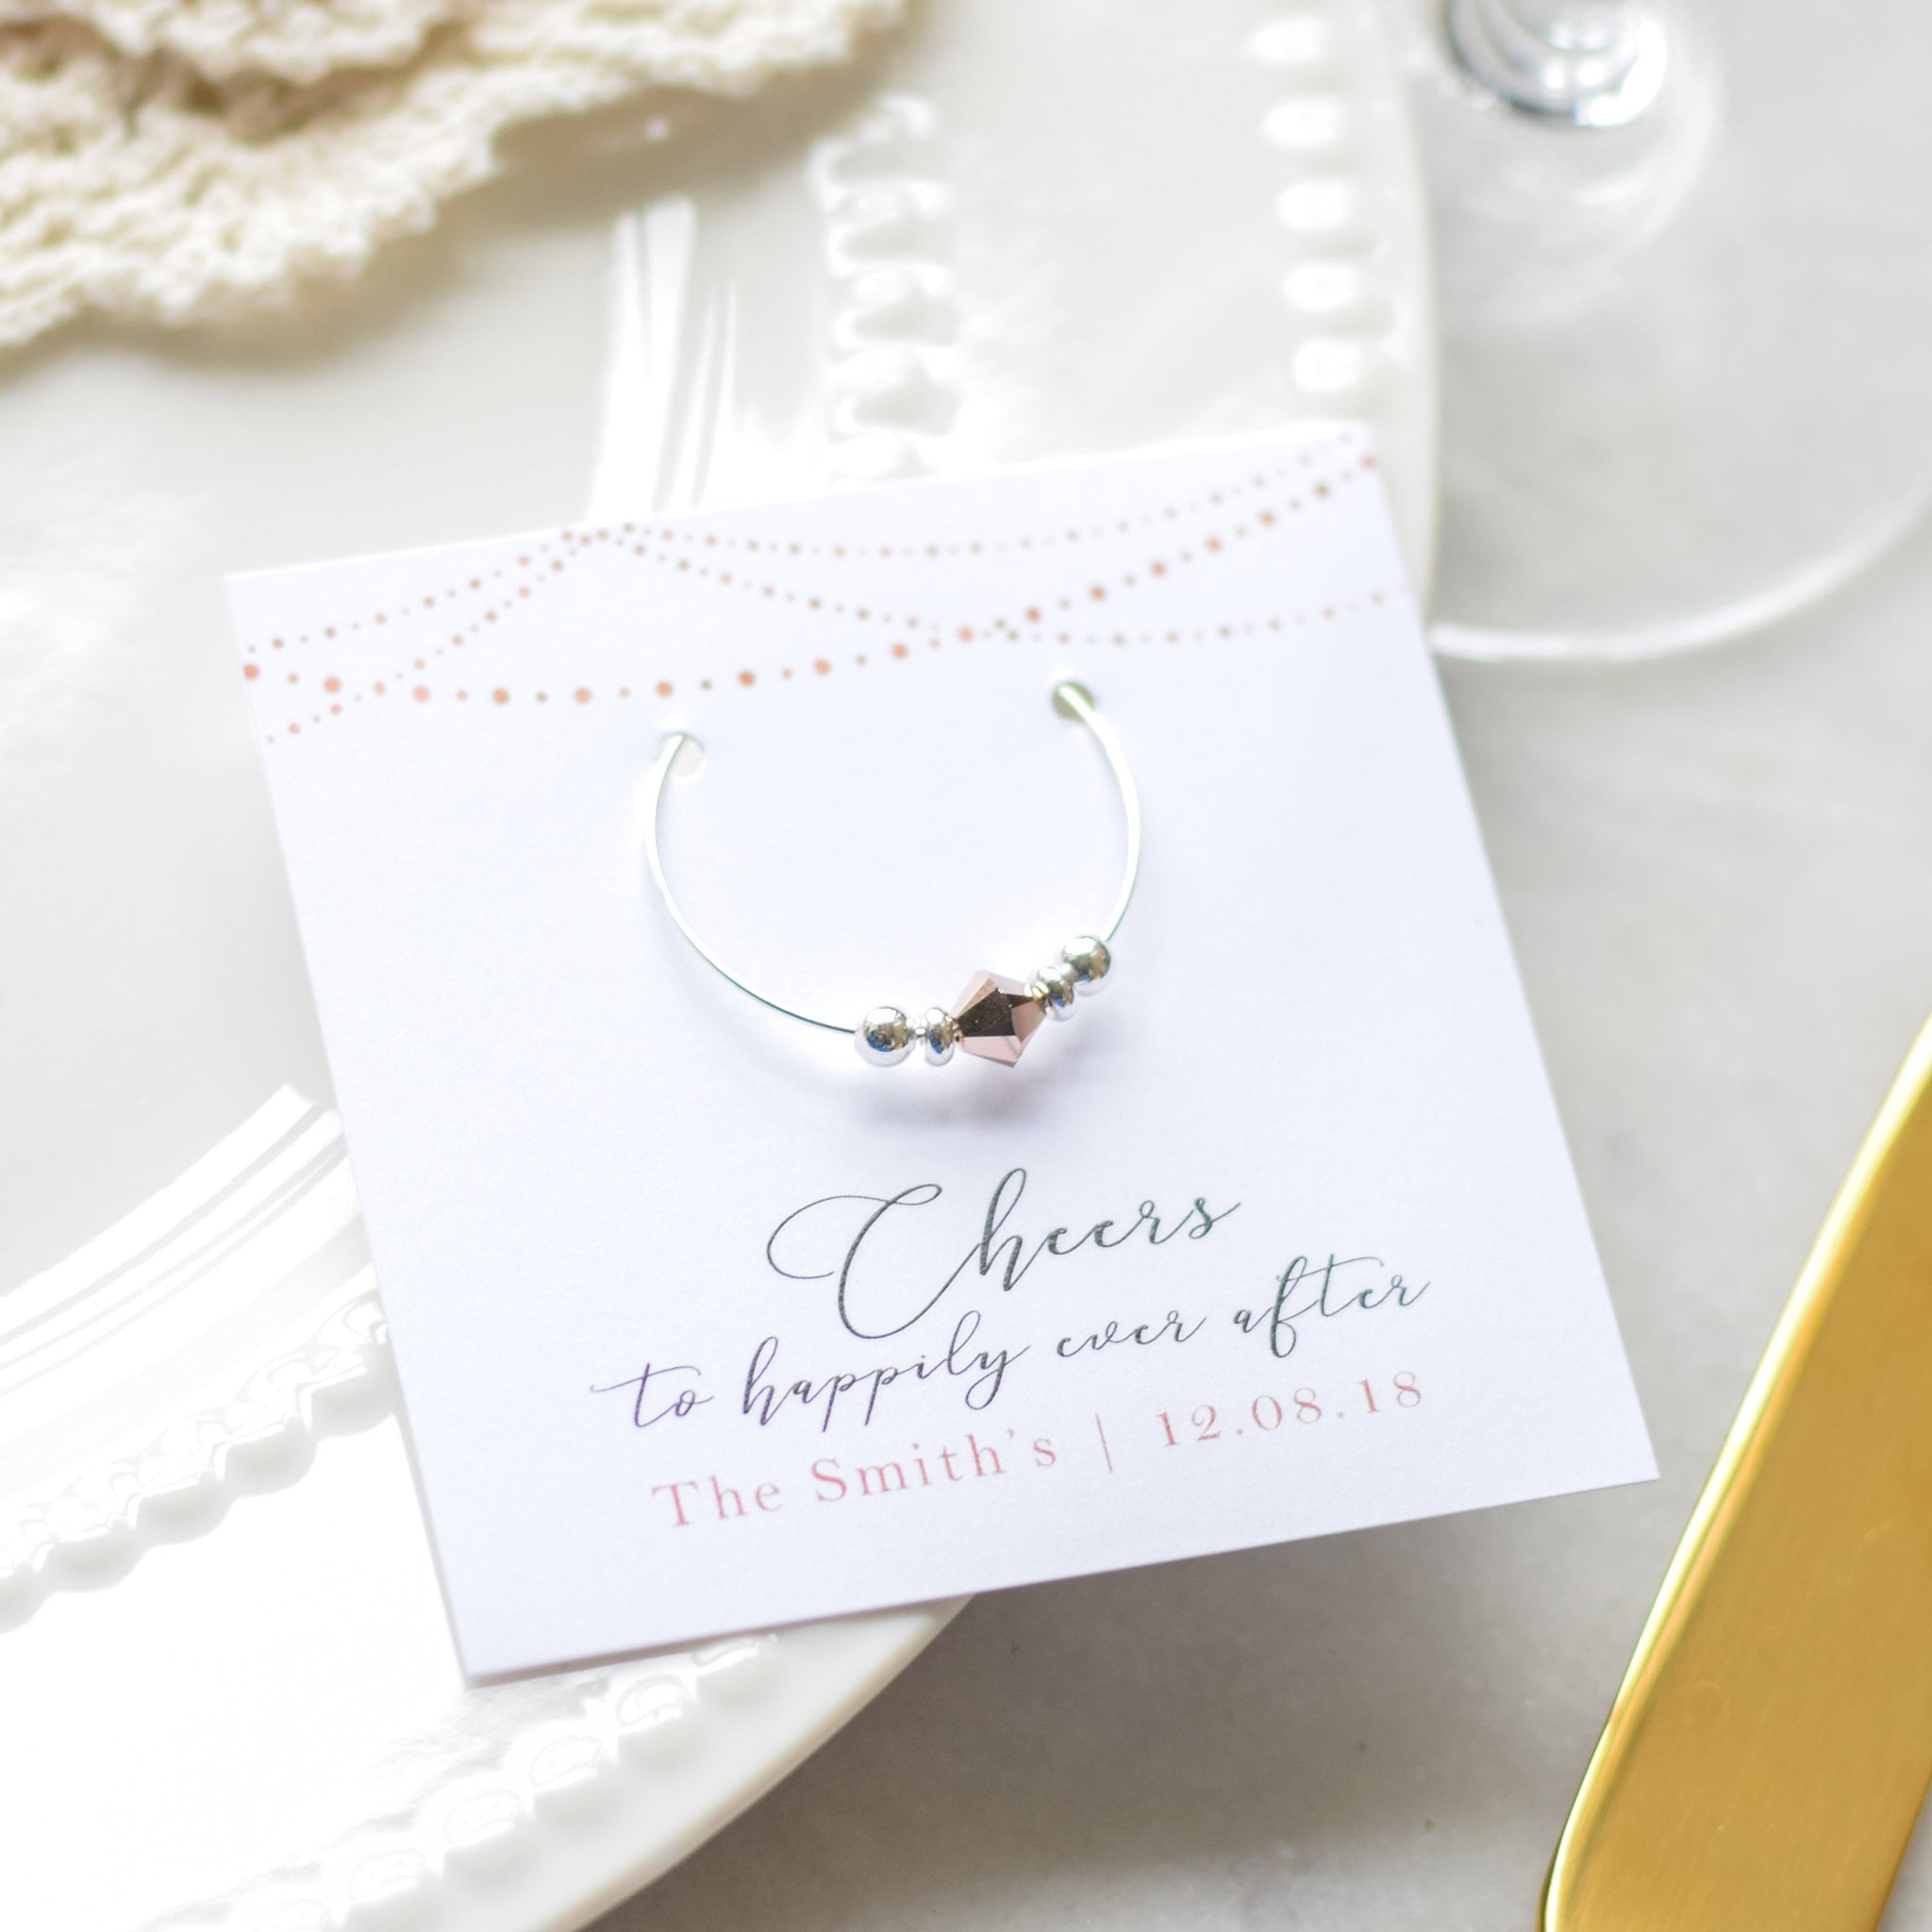 Gold Wedding Favor Gift Ideas - Stemware Charms - @PlumPolkaDot